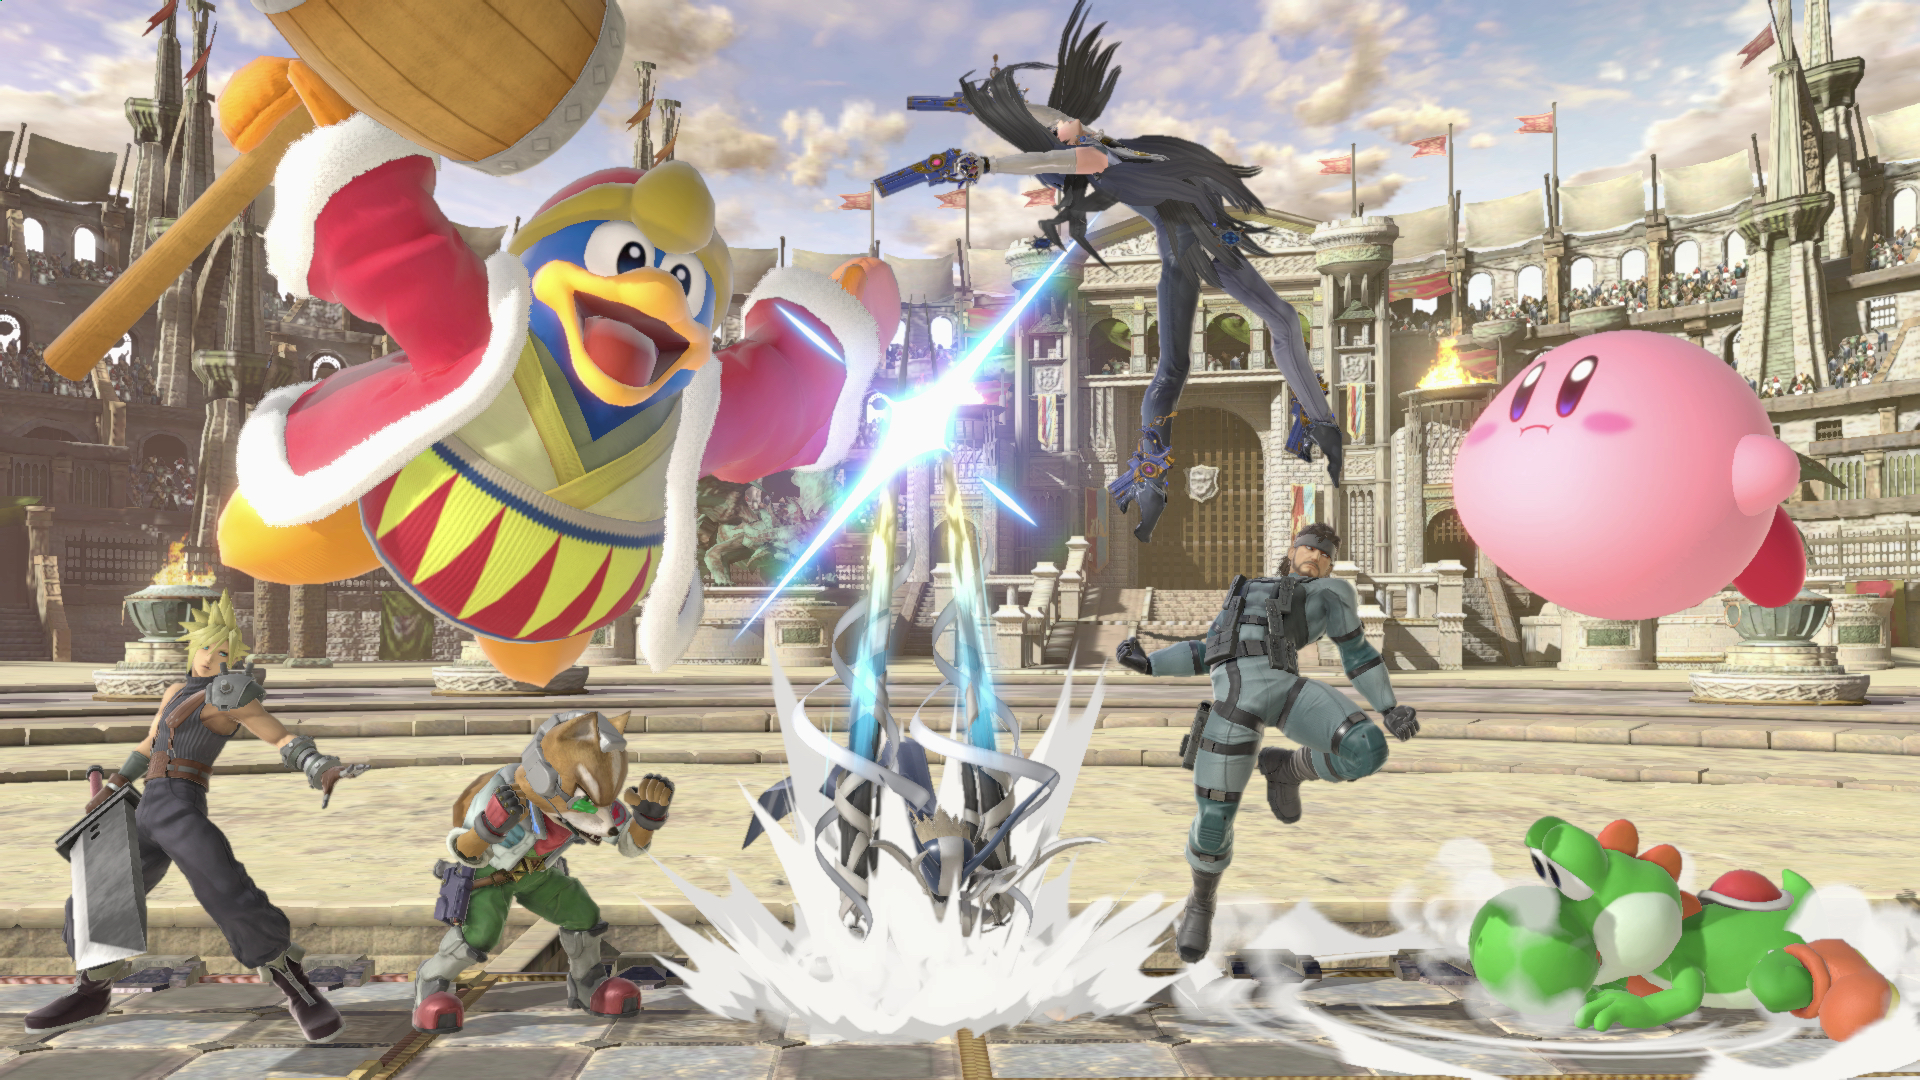 Nintendo Announces Open Super Smash Bros Ultimate And Splatoon 2